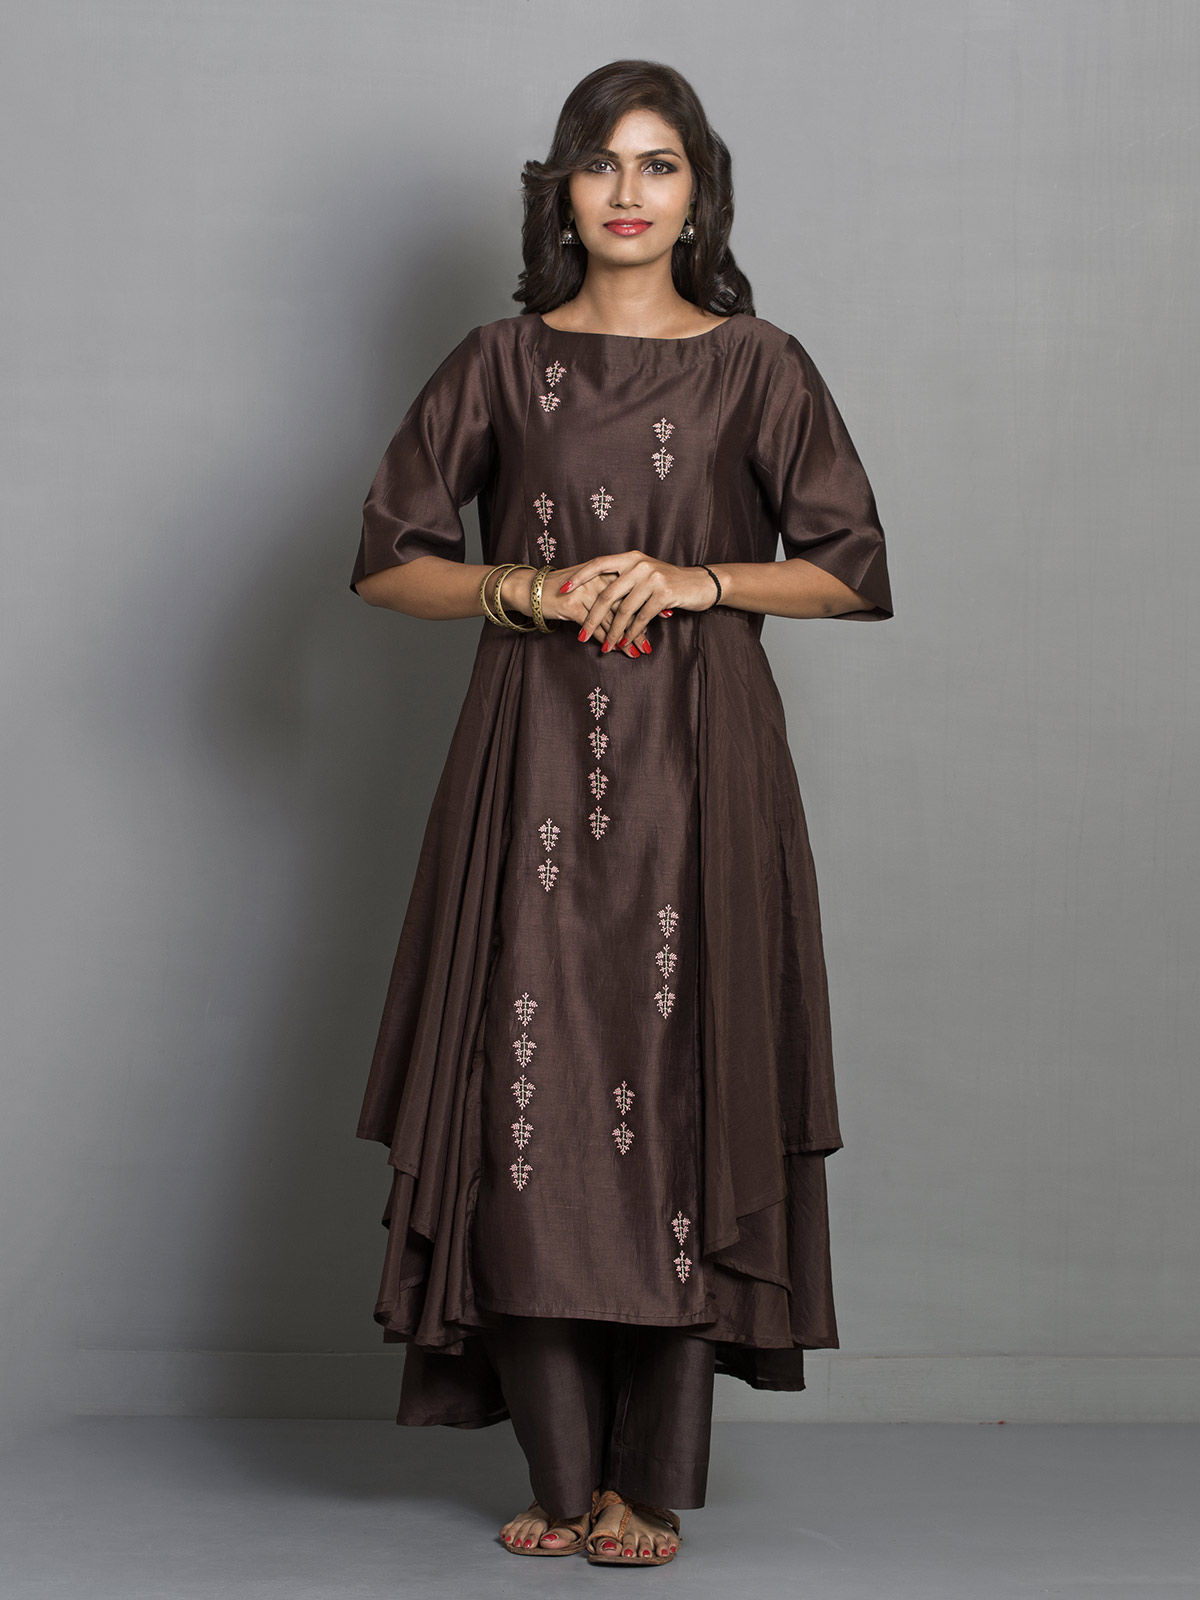 Chocolate Brown Flared Long Chanderi Tunic with Embroidered Motifs